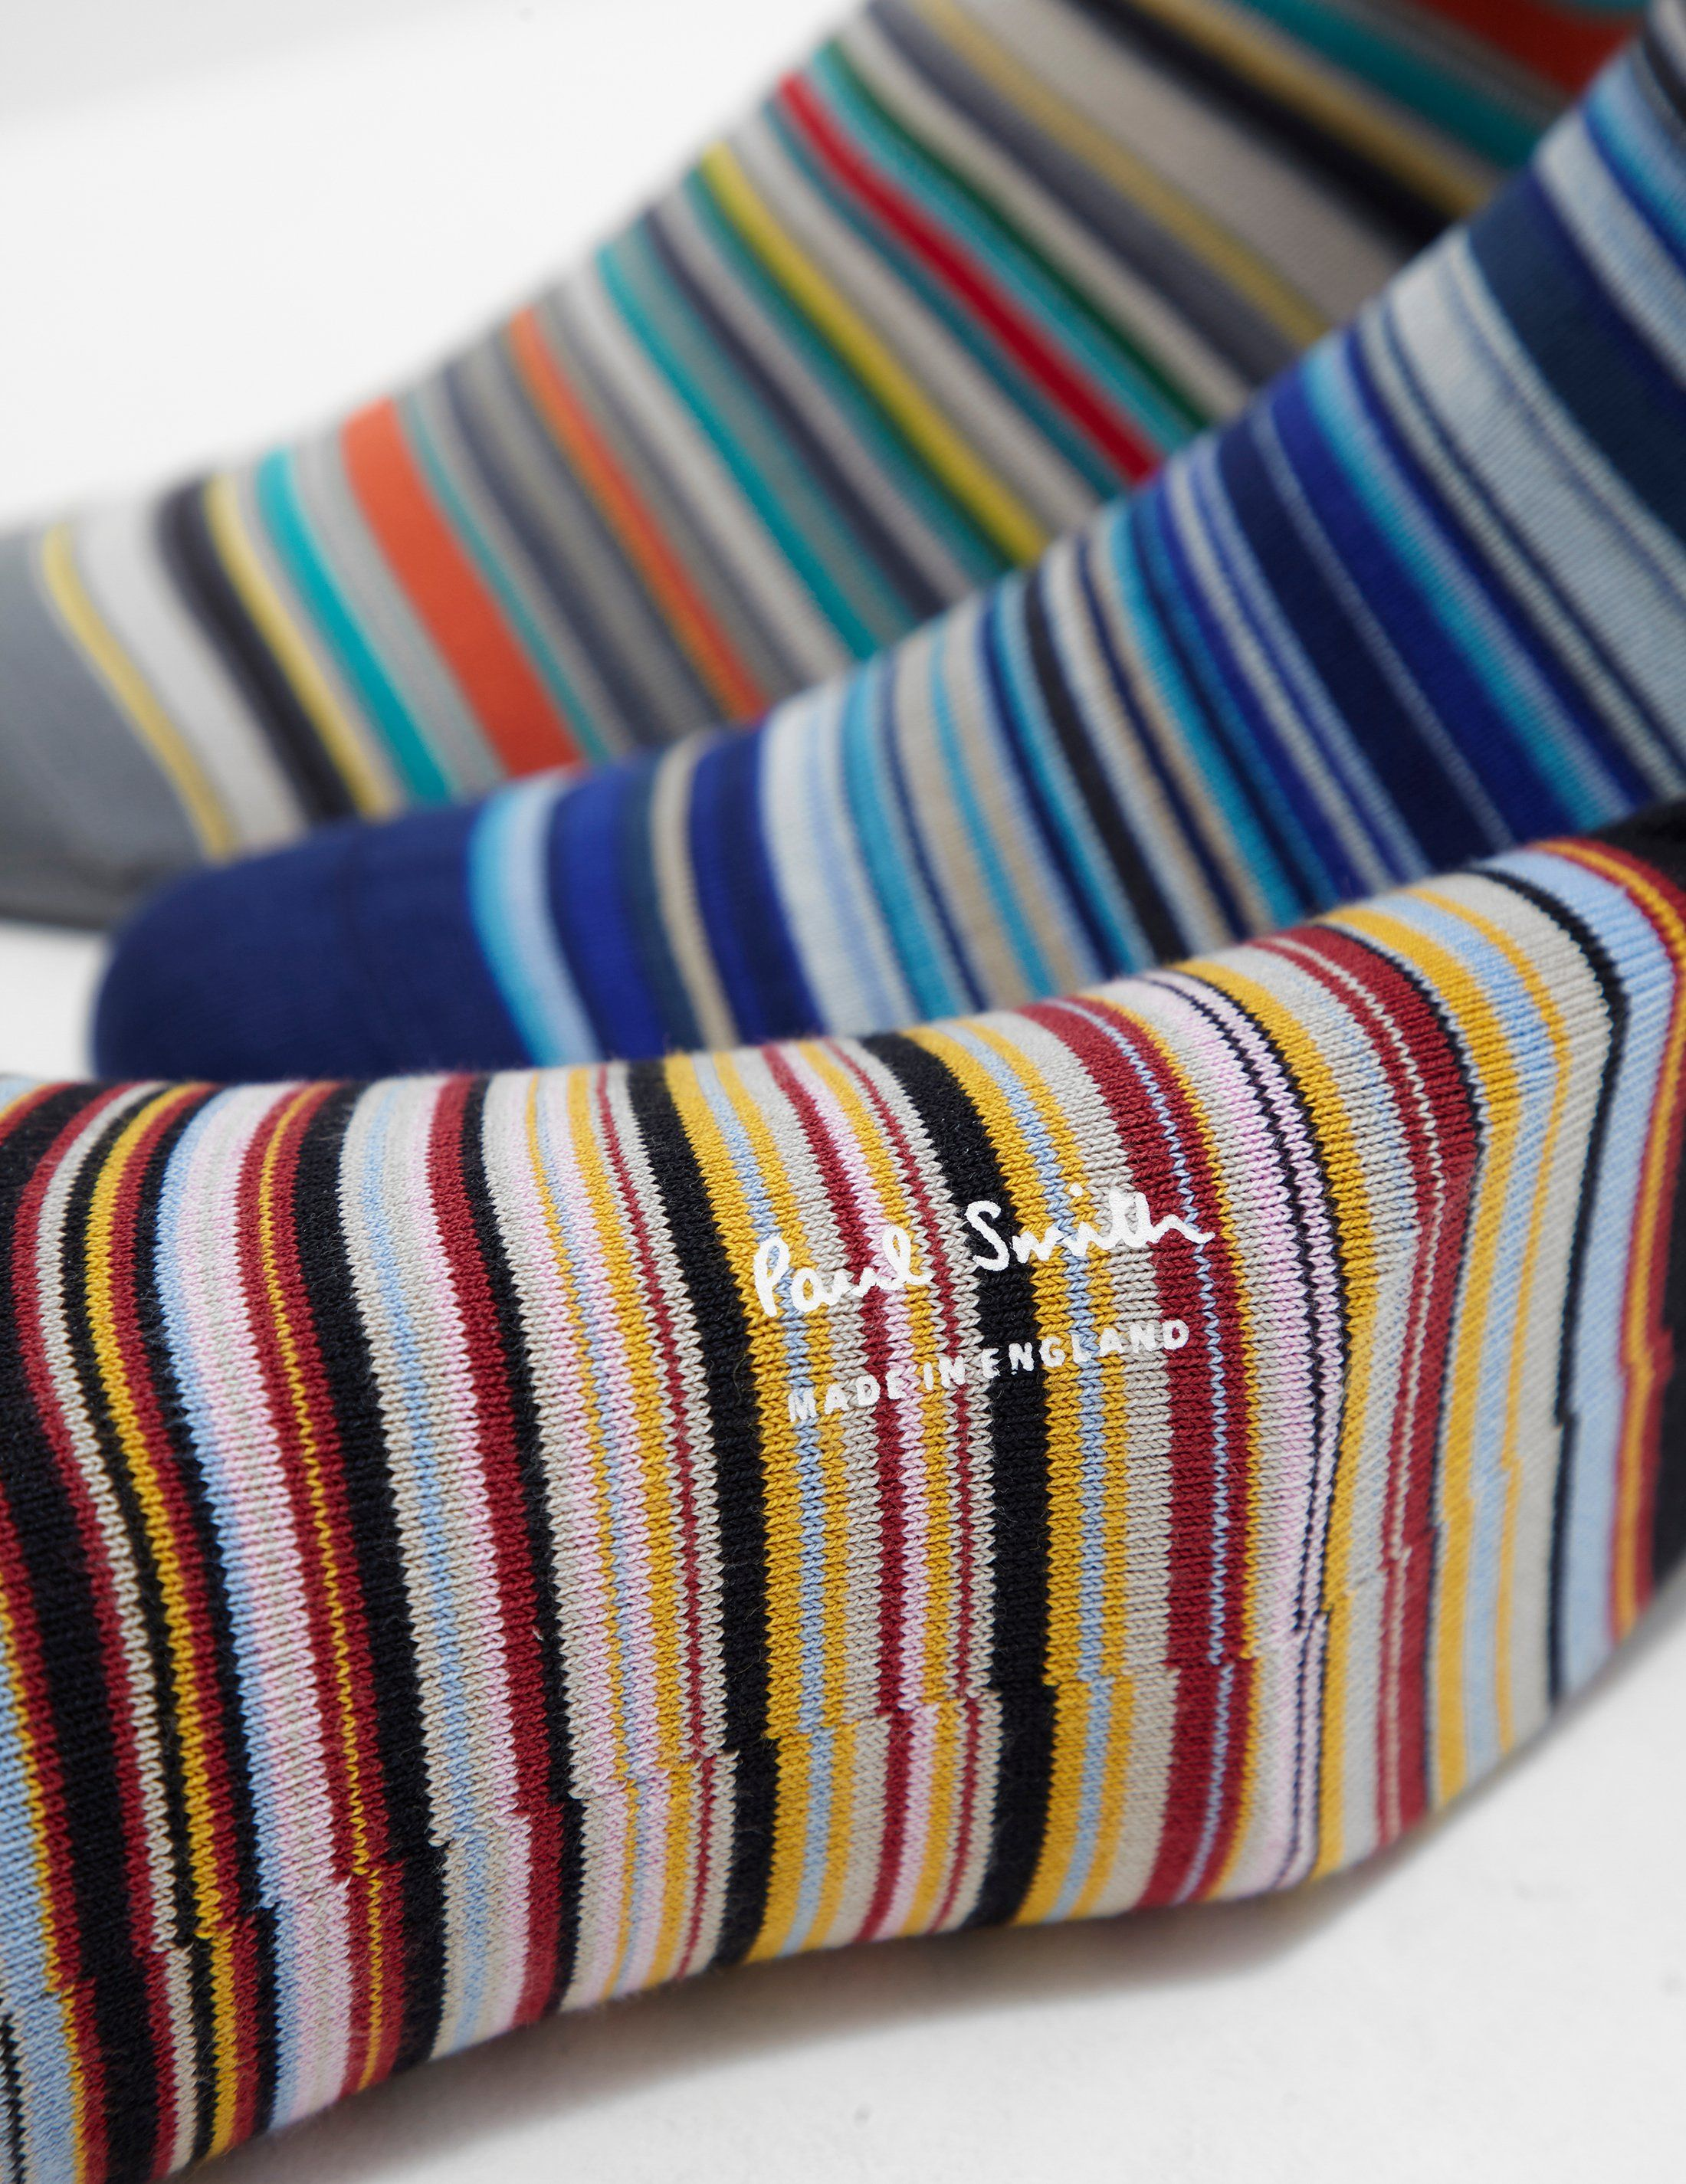 PS Paul Smith 3-Pack Striped Socks - Online Exclusive